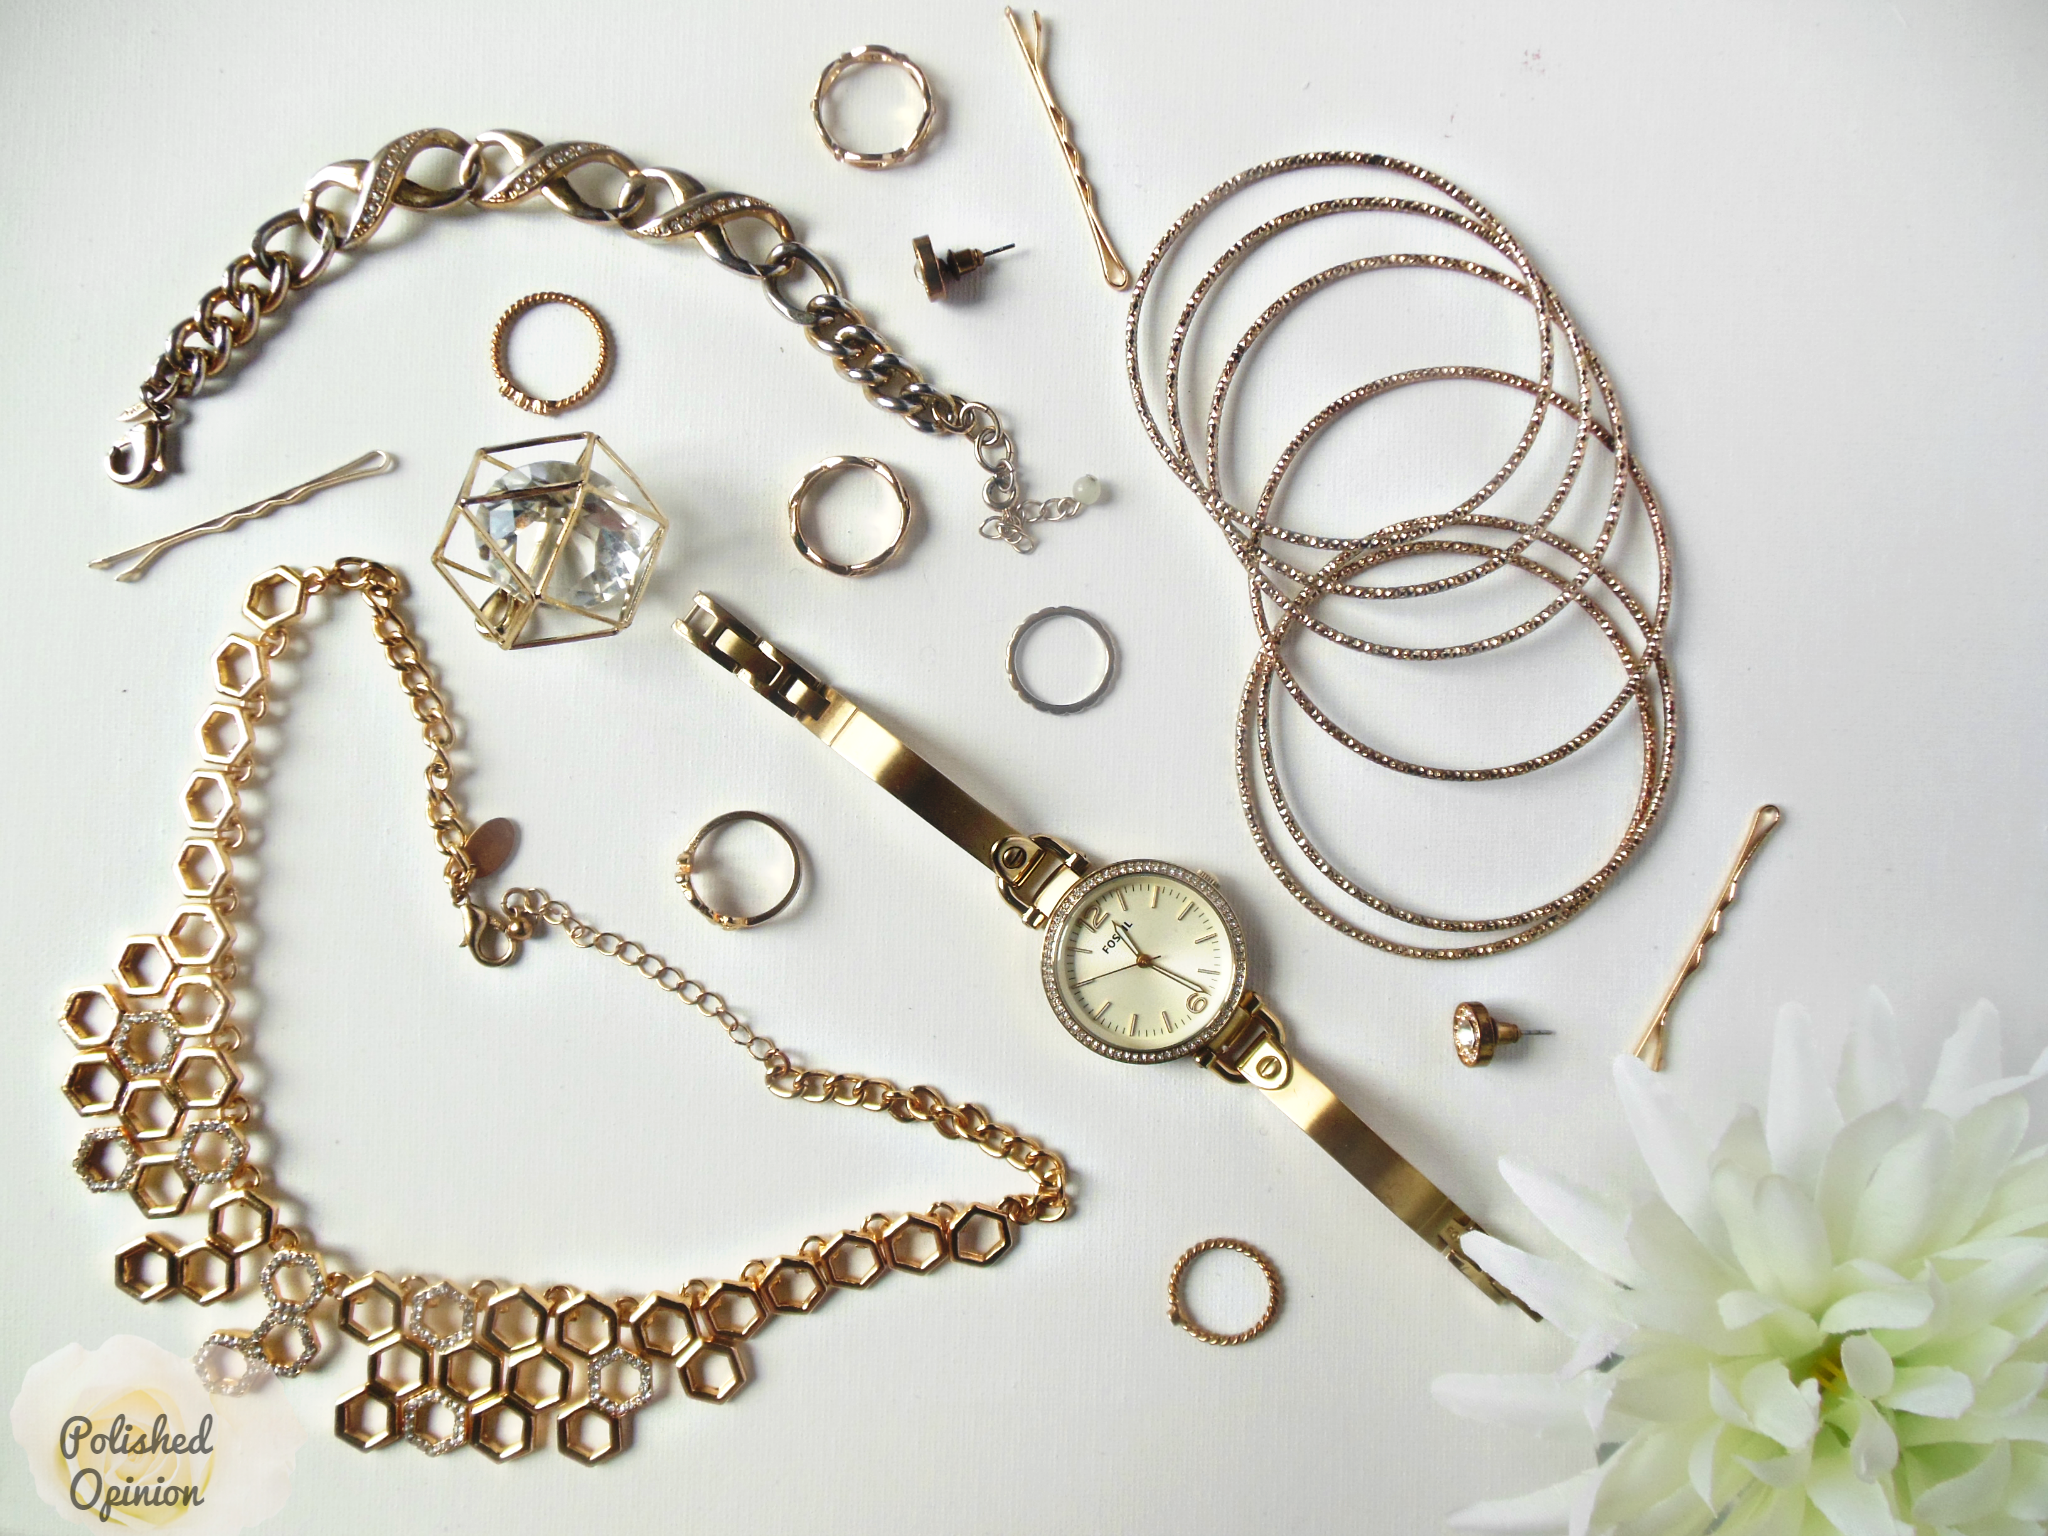 Ever wondered which is better? Gold or Rose Gold? Which is right for YOU? Click here and read the pros and cons of gold vs rose gold jewelry! Plus get tips on how to wear them!